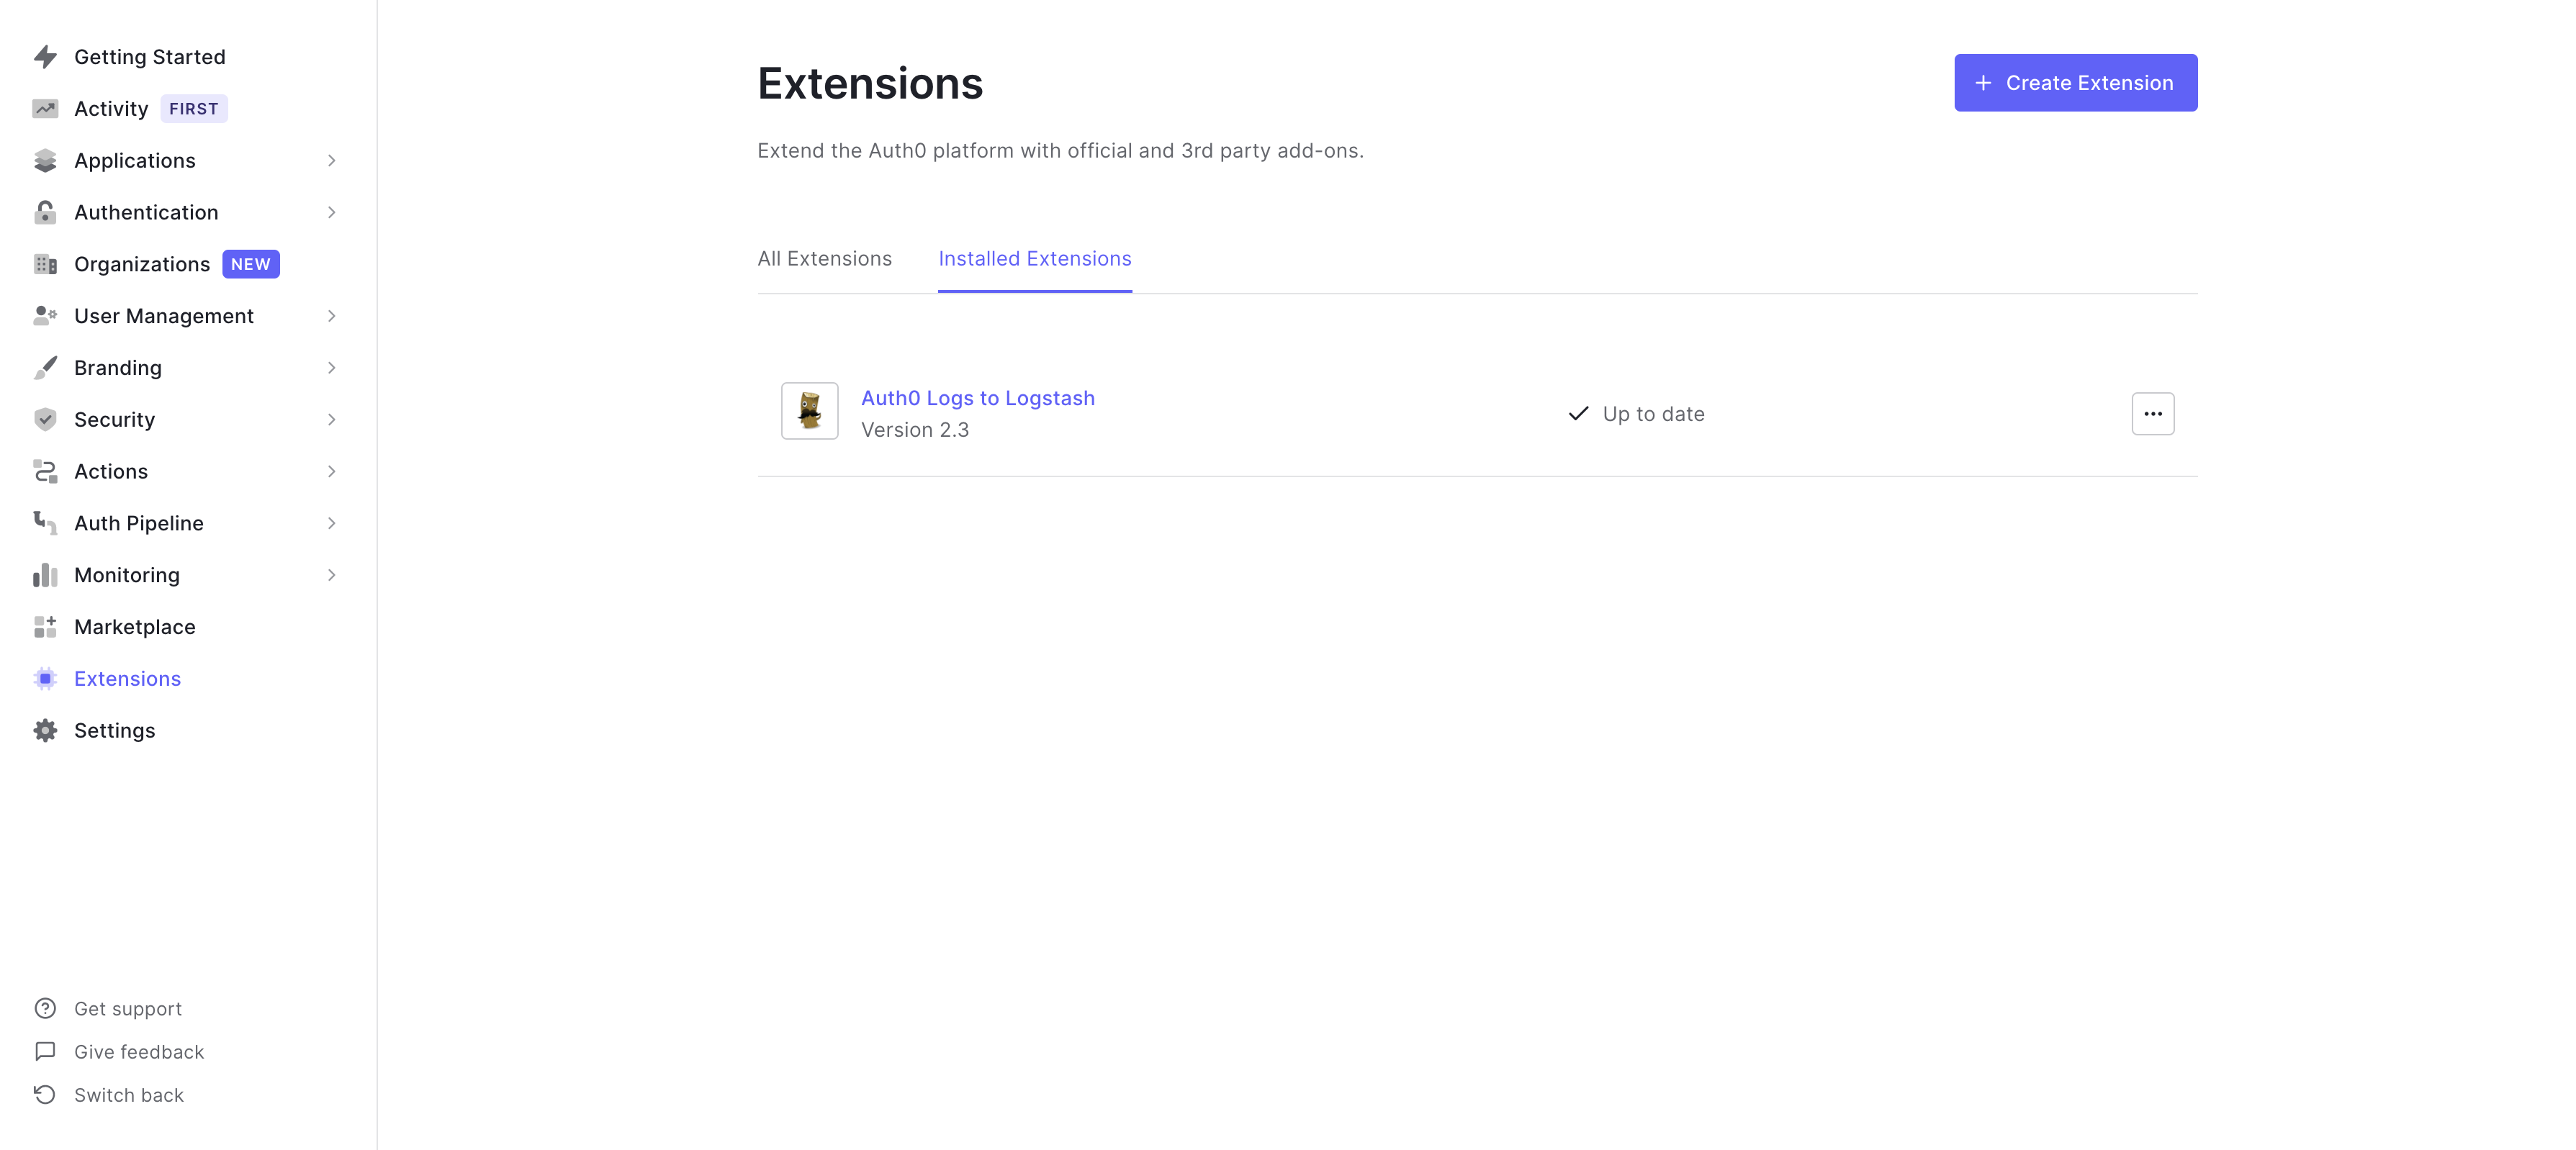 Installed extensions